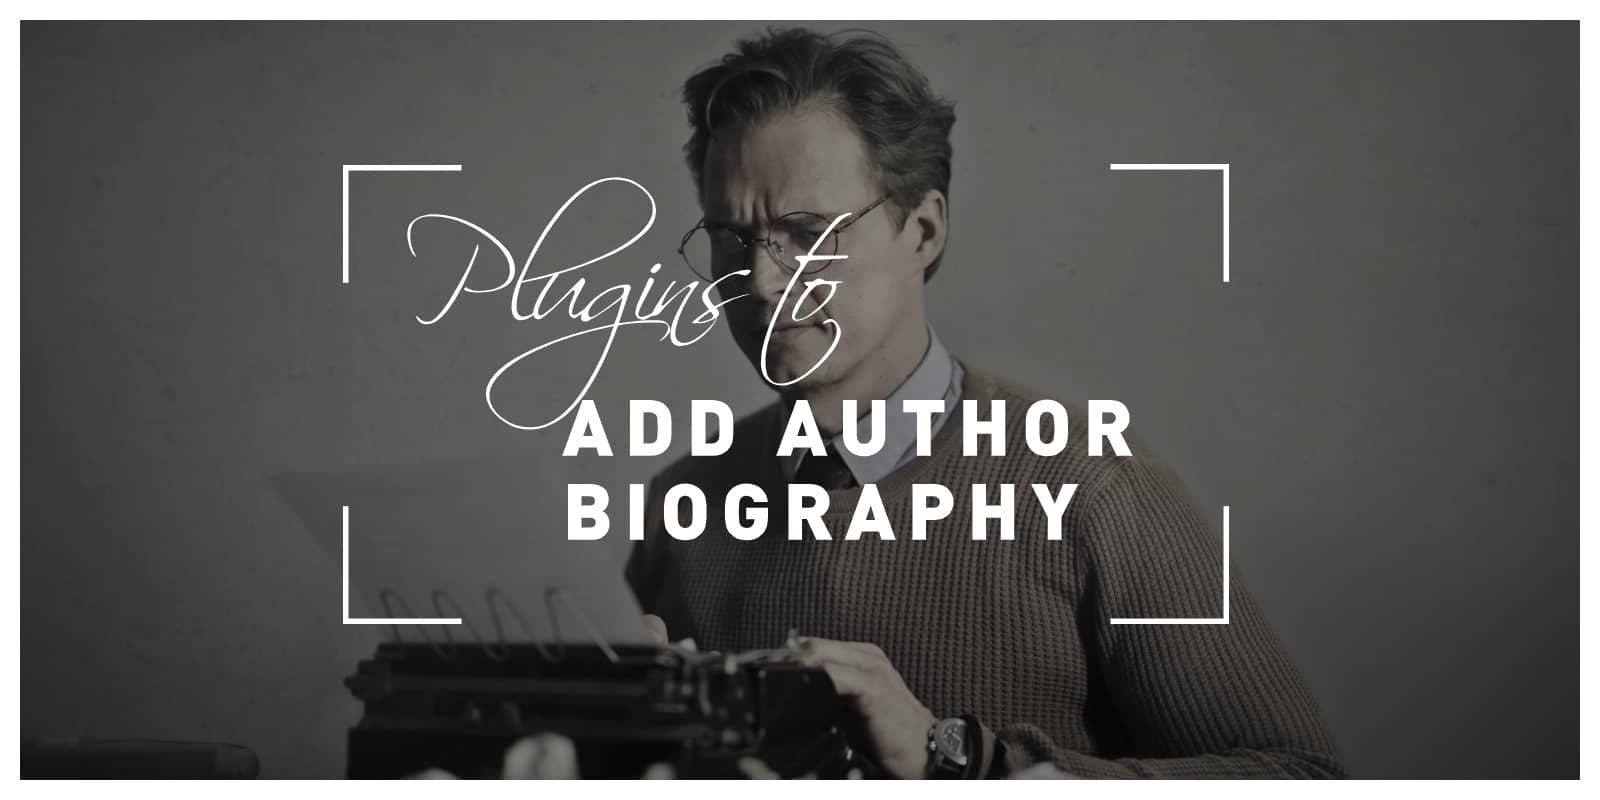 Plugins to add author biography